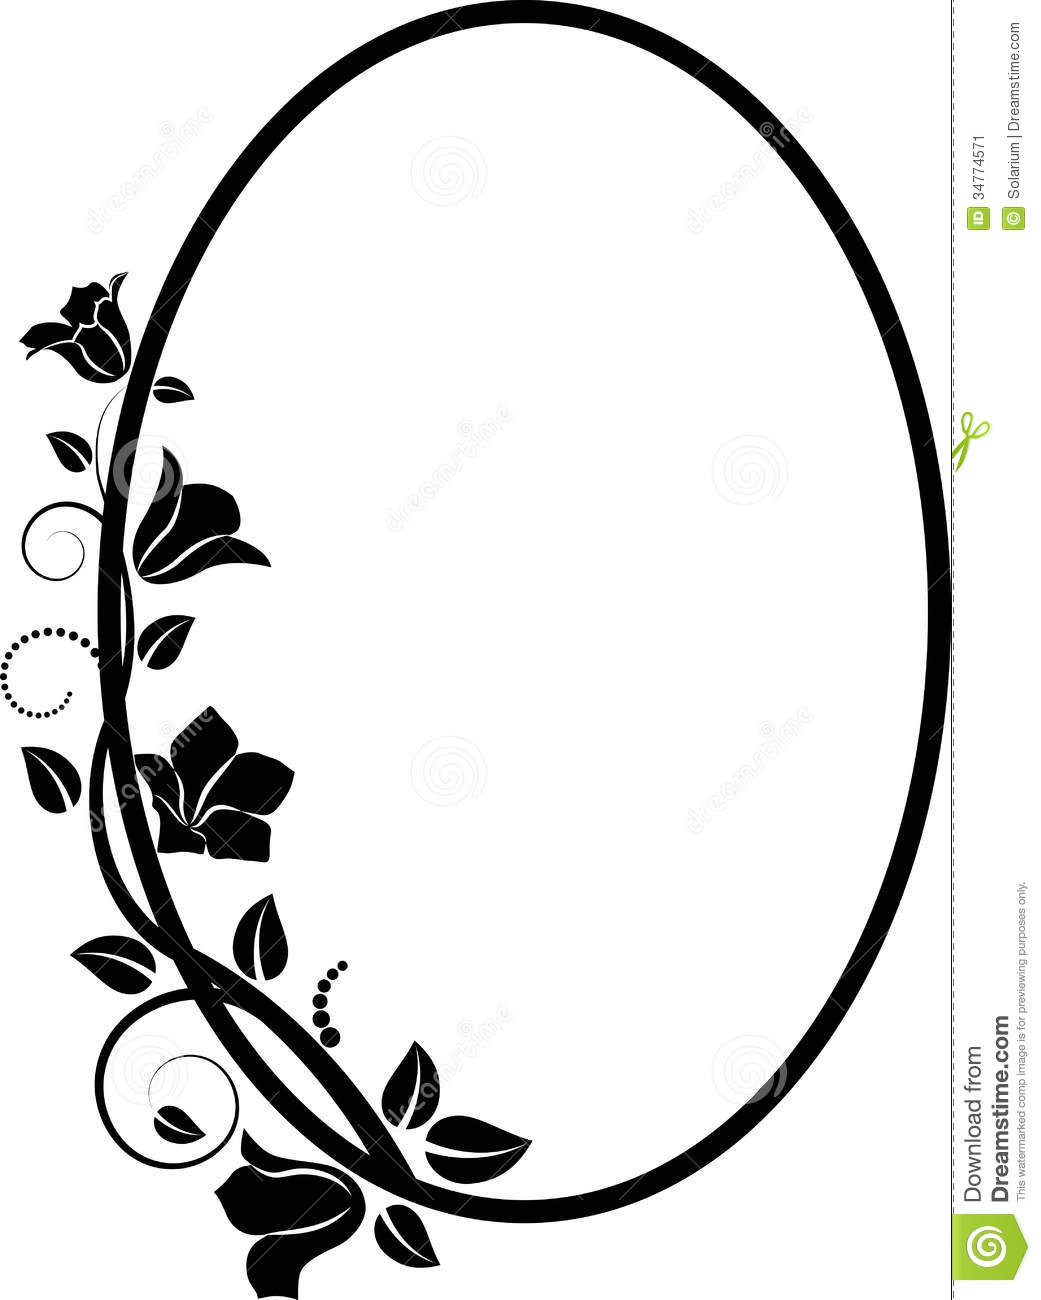 floral frame stock vector illustration of oval isolated 34774571 rh dreamstime com frame clip art free download frames clip art free images